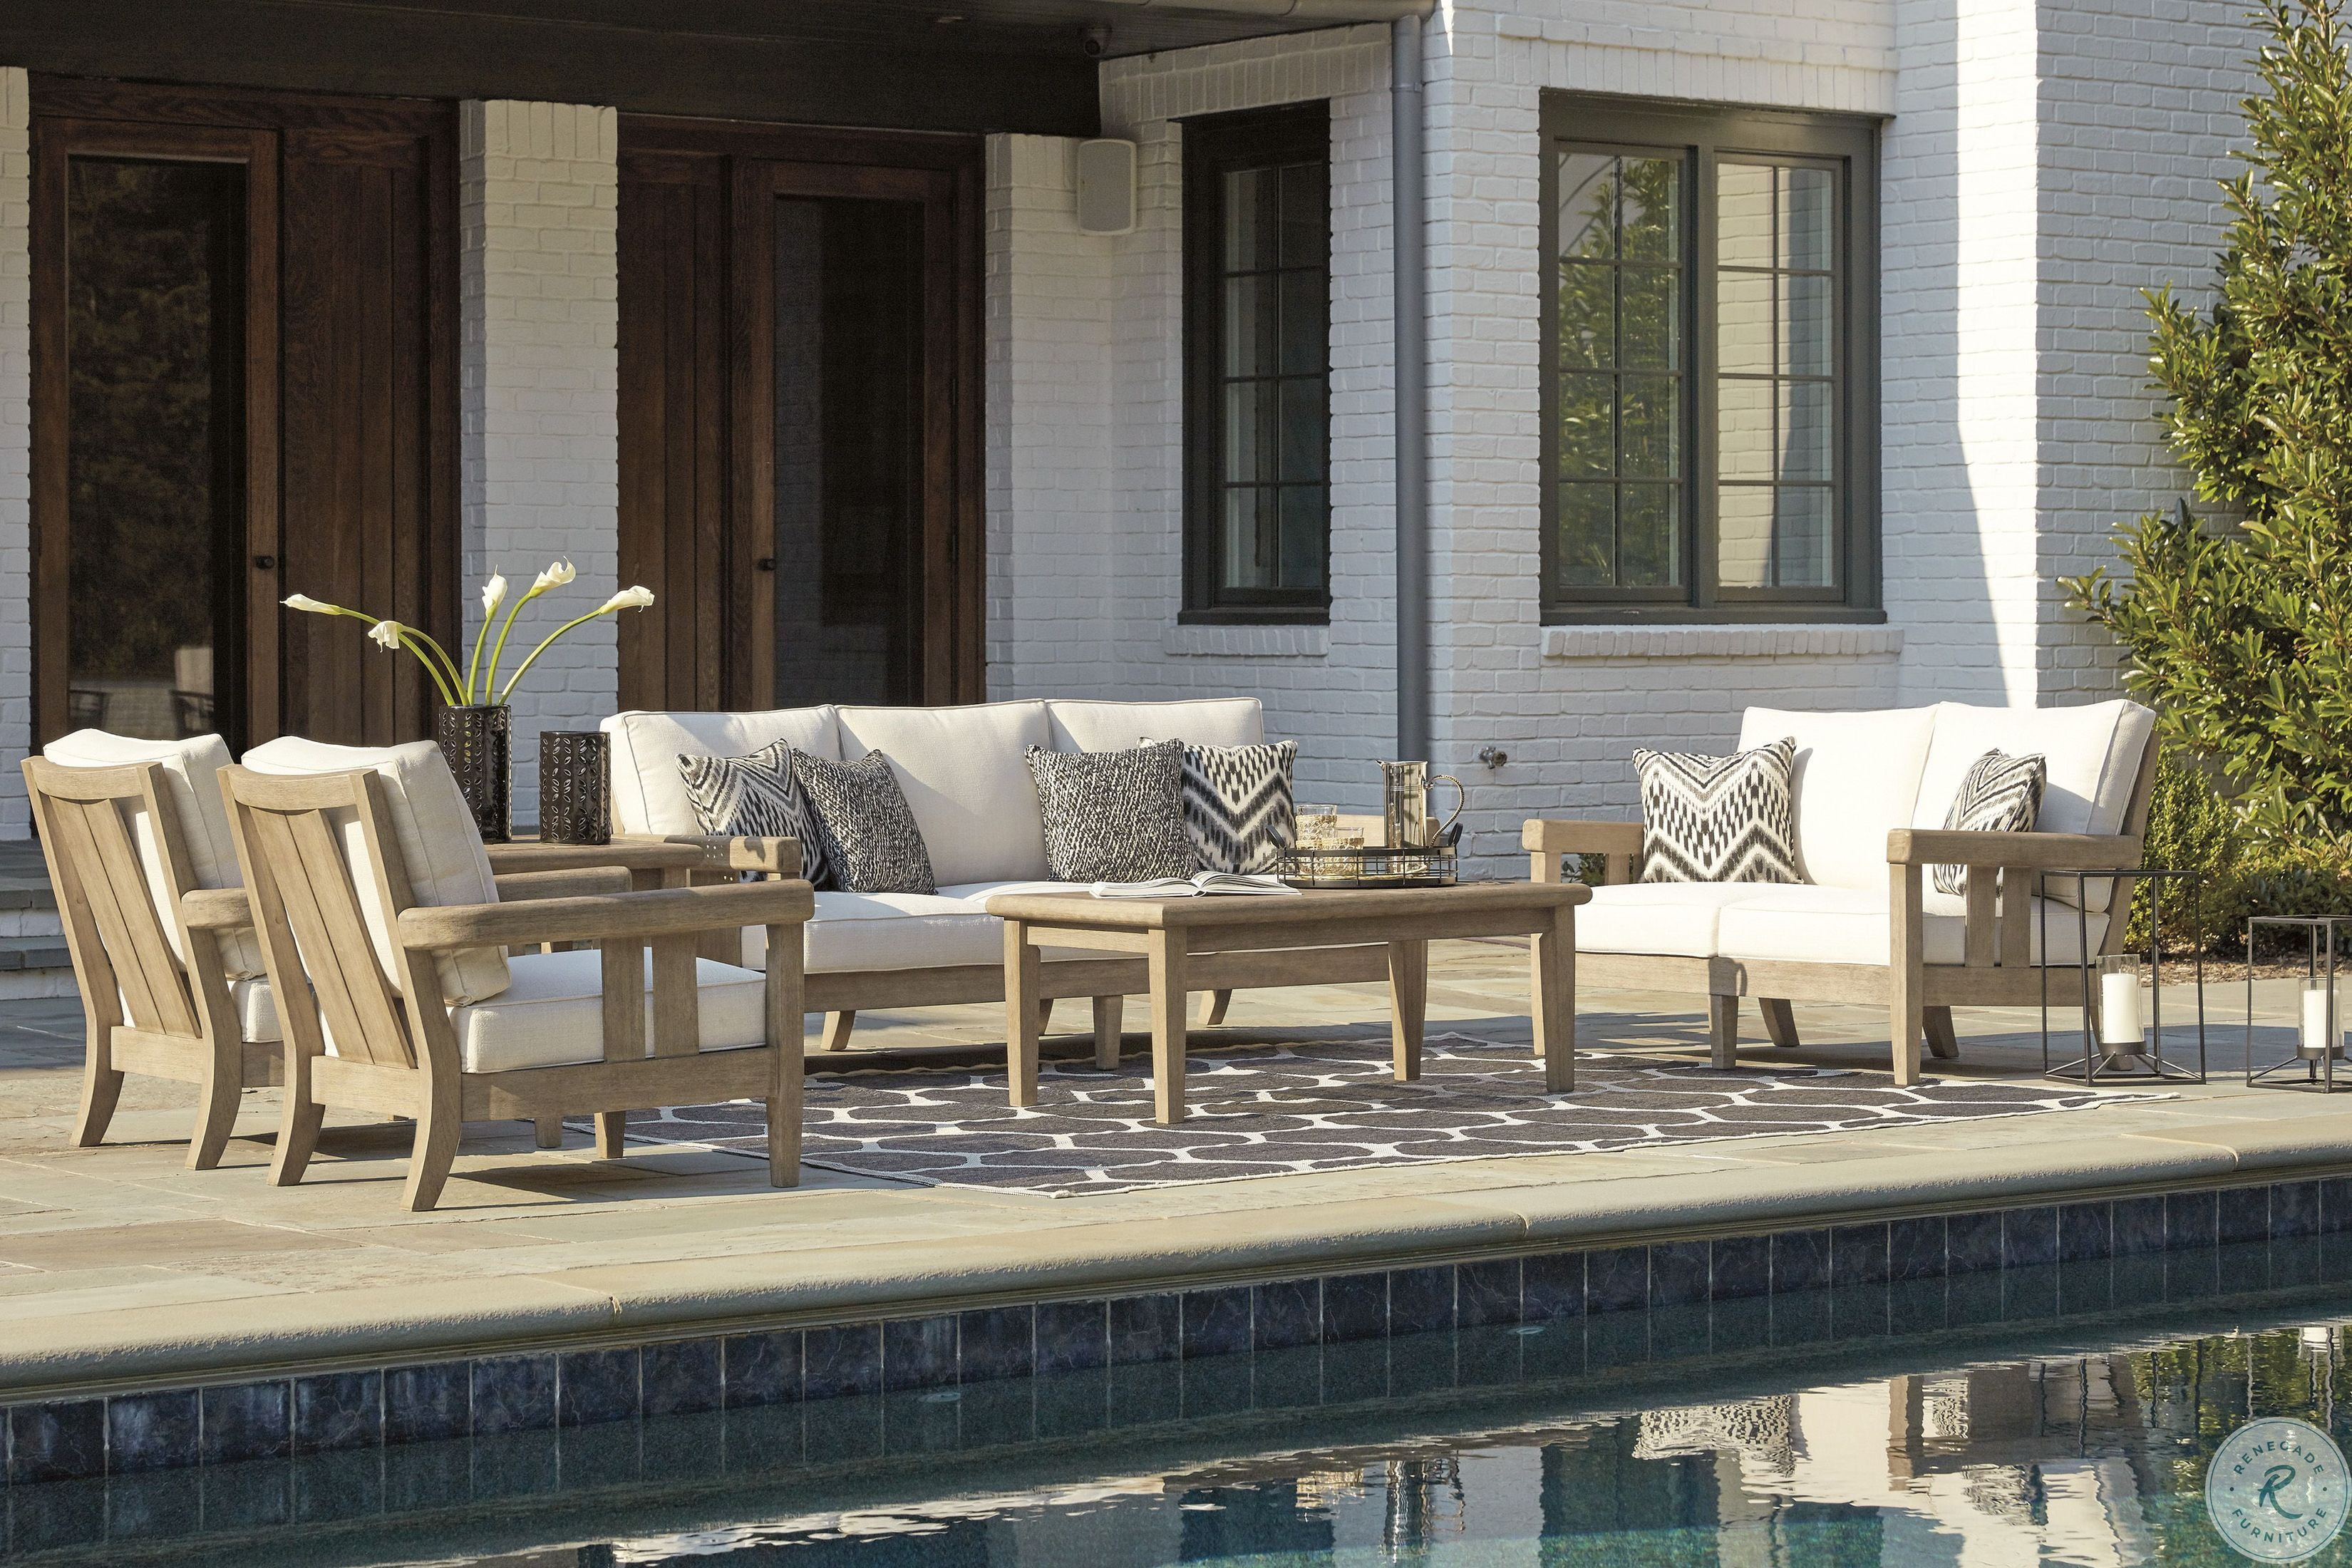 Clare View Beige Outdoor Living Room Set With Cushion In 2020 Patio Furniture Layout Outdoor Furniture Layout Outdoor Living Room #patio #furniture #in #living #room